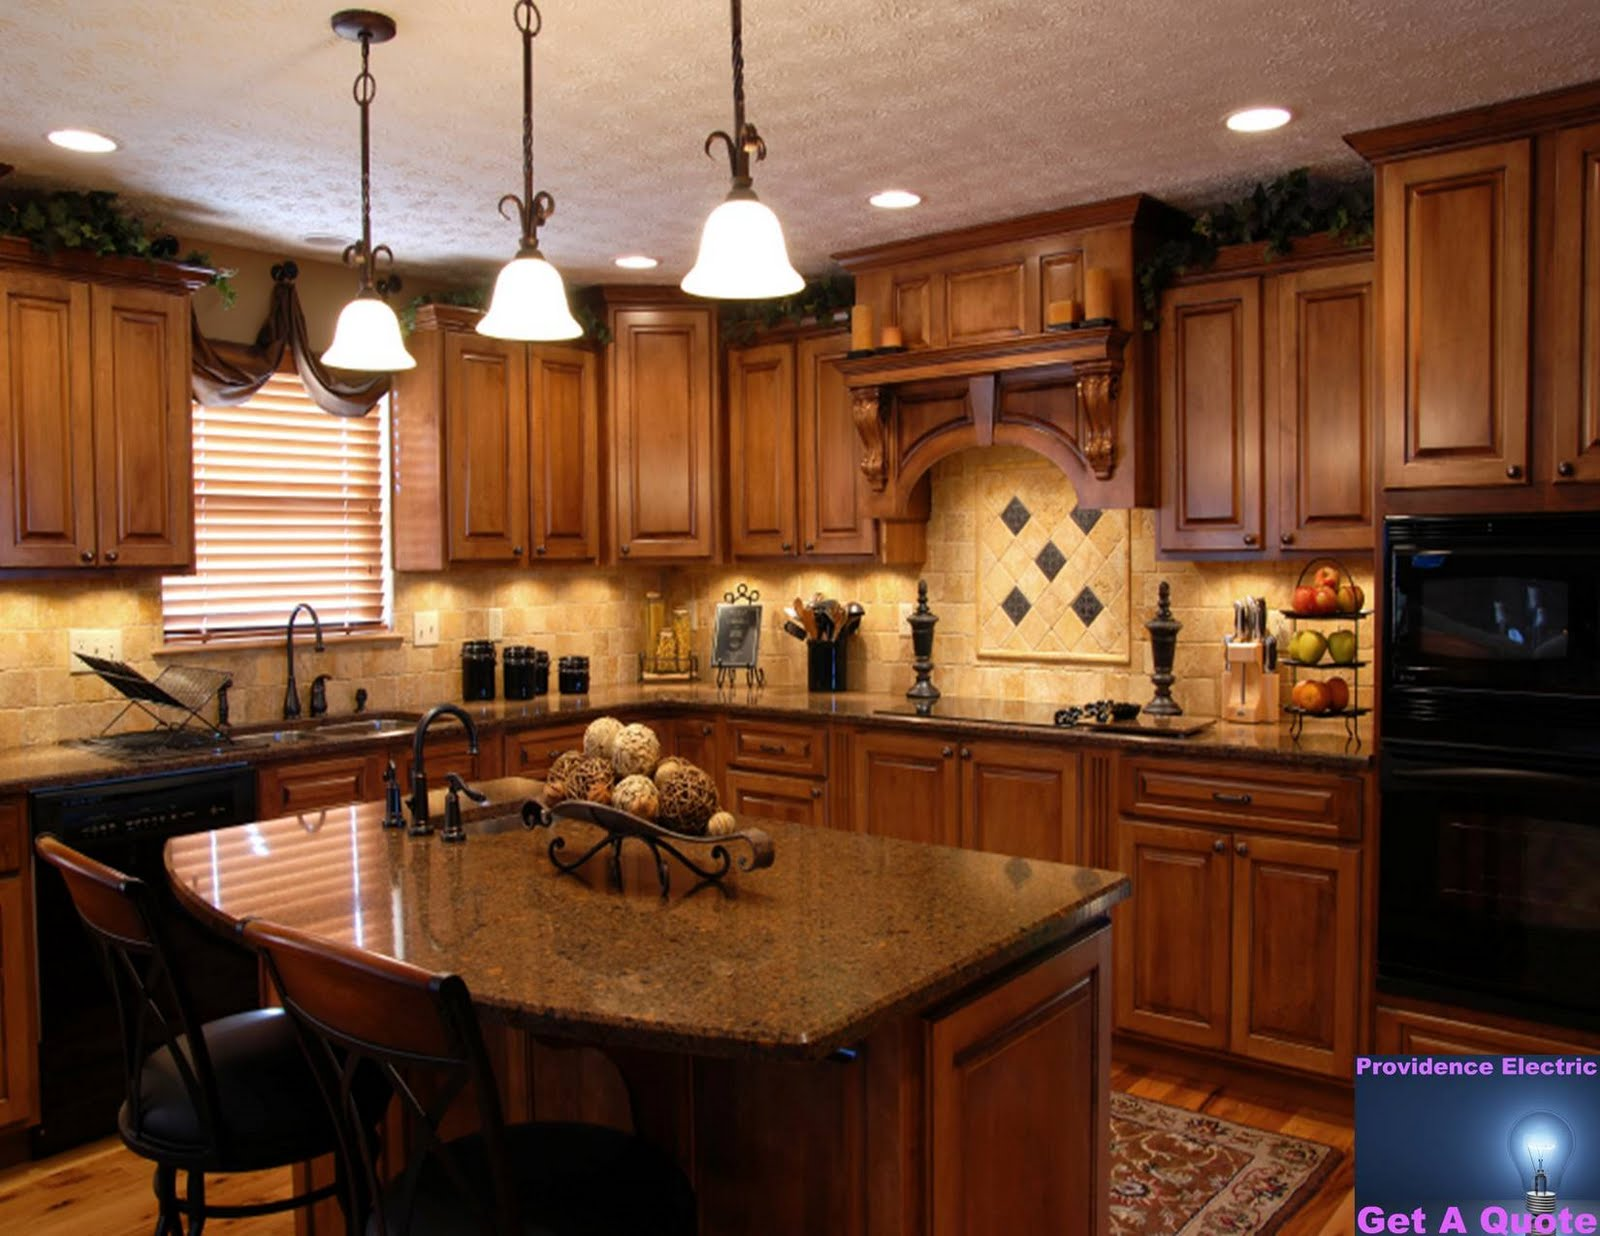 Kitchen Cabinets Remodel Warehouse Design Notes Makeover On A Budget Lighting